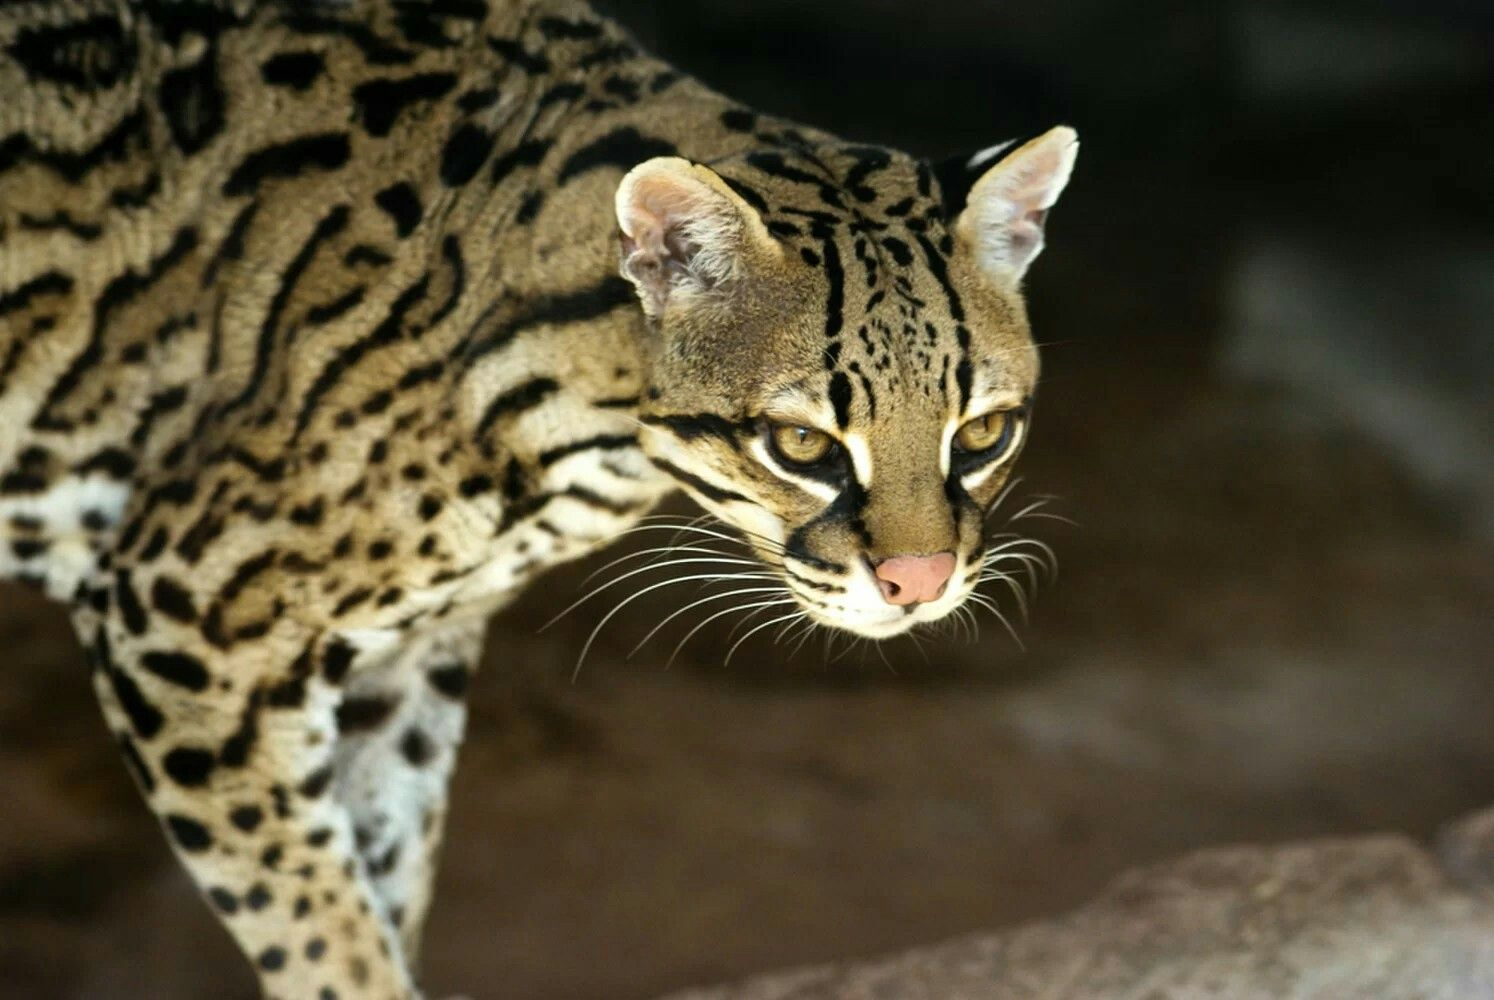 Ocelot (With images) Wild cats, Ocelot, Spotted cat